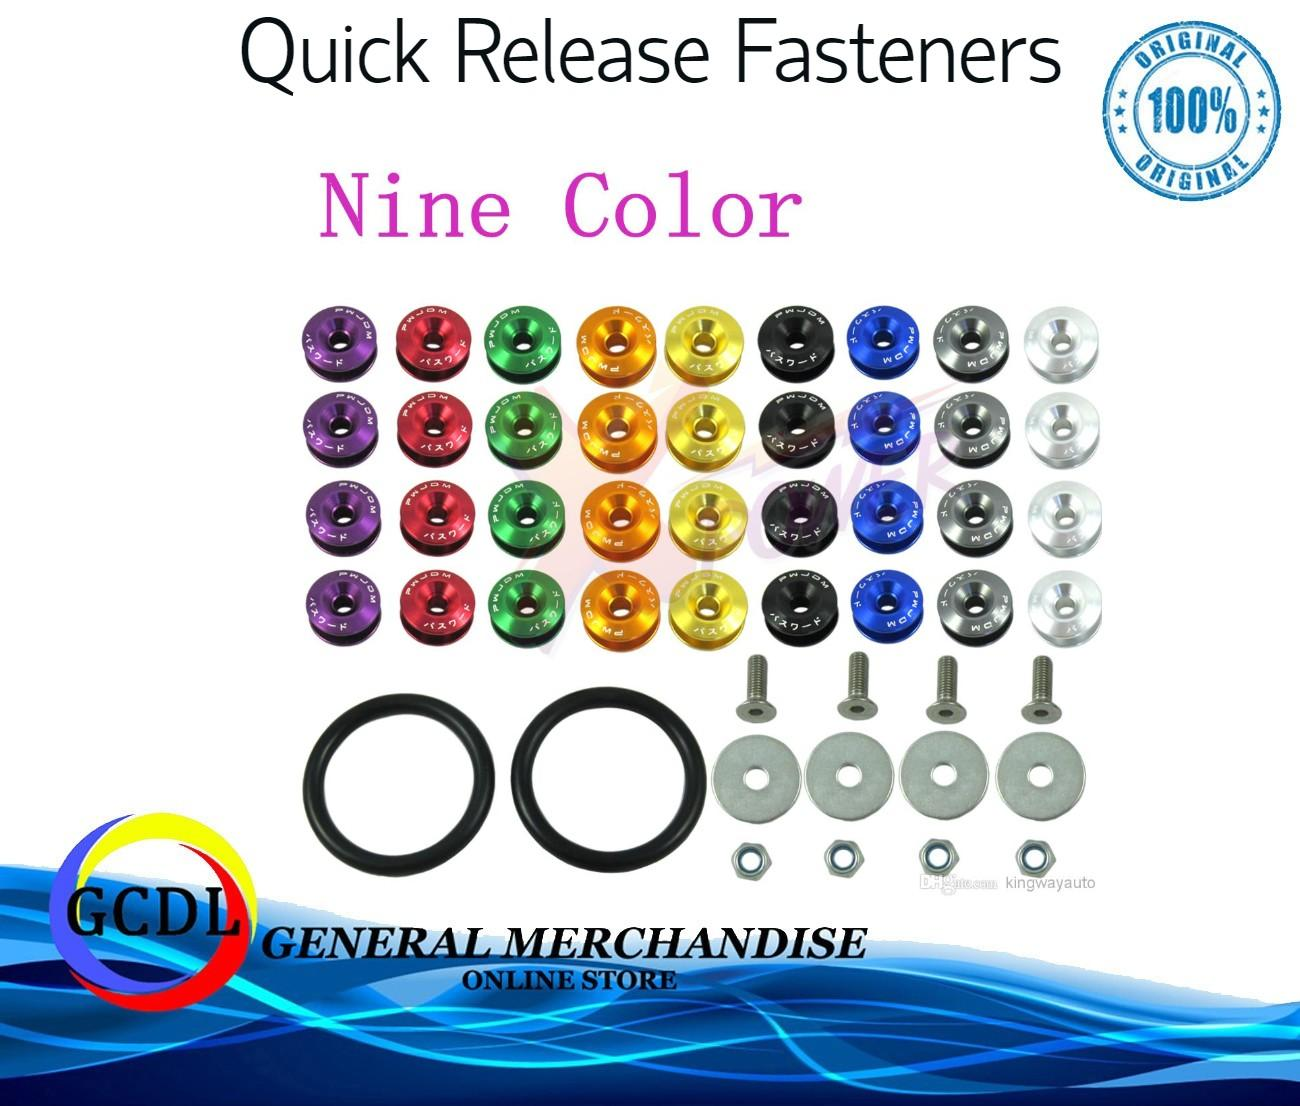 Jdm Password Bumper Fasteners(black) By Gcdl General Merchandise.